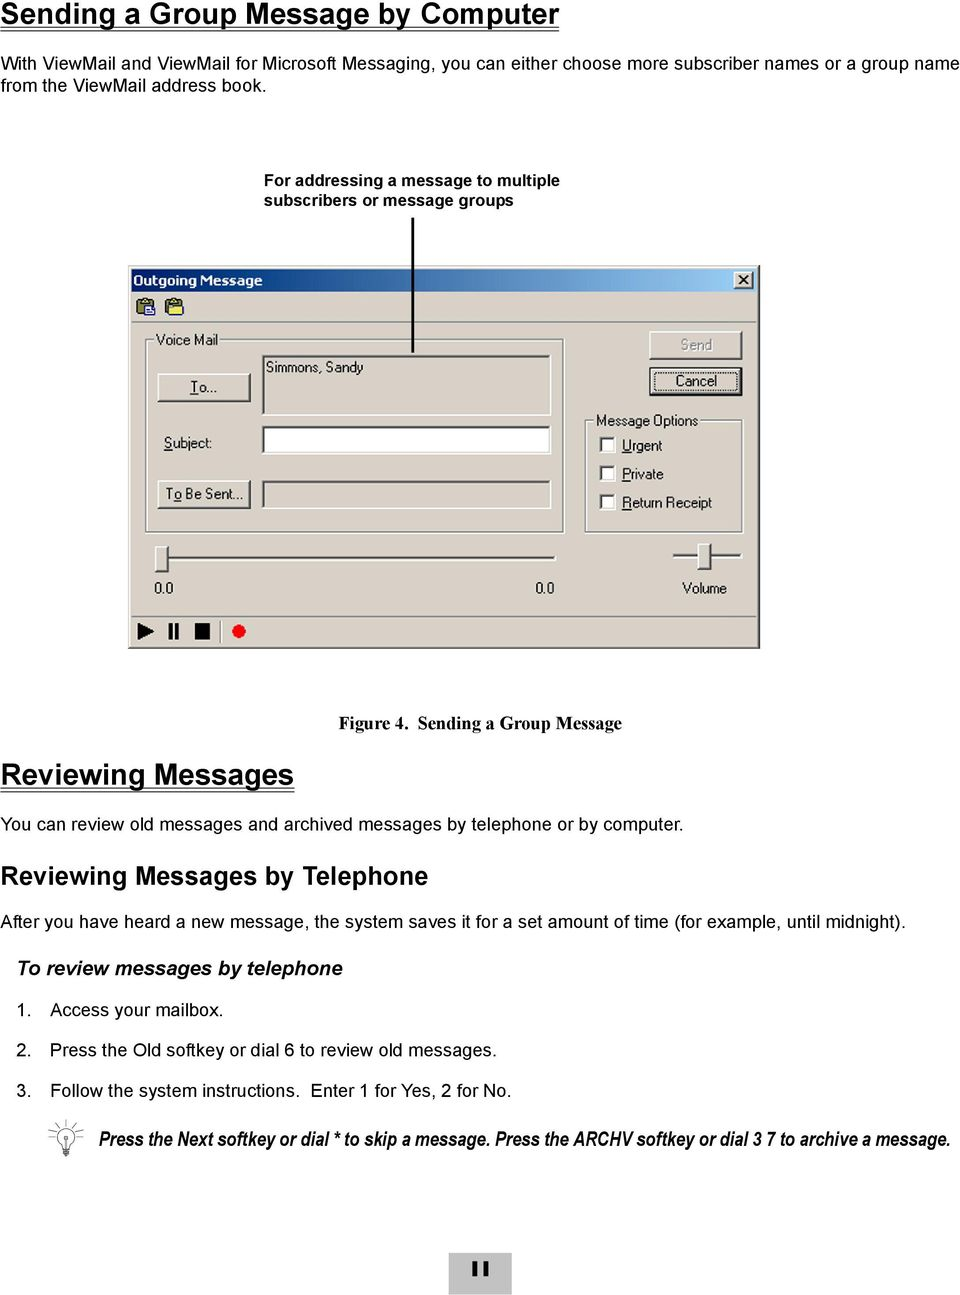 Reviewing Messages by Telephone Figure 4. Sending a Group Message After you have heard a new message, the system saves it for a set amount of time (for example, until midnight).